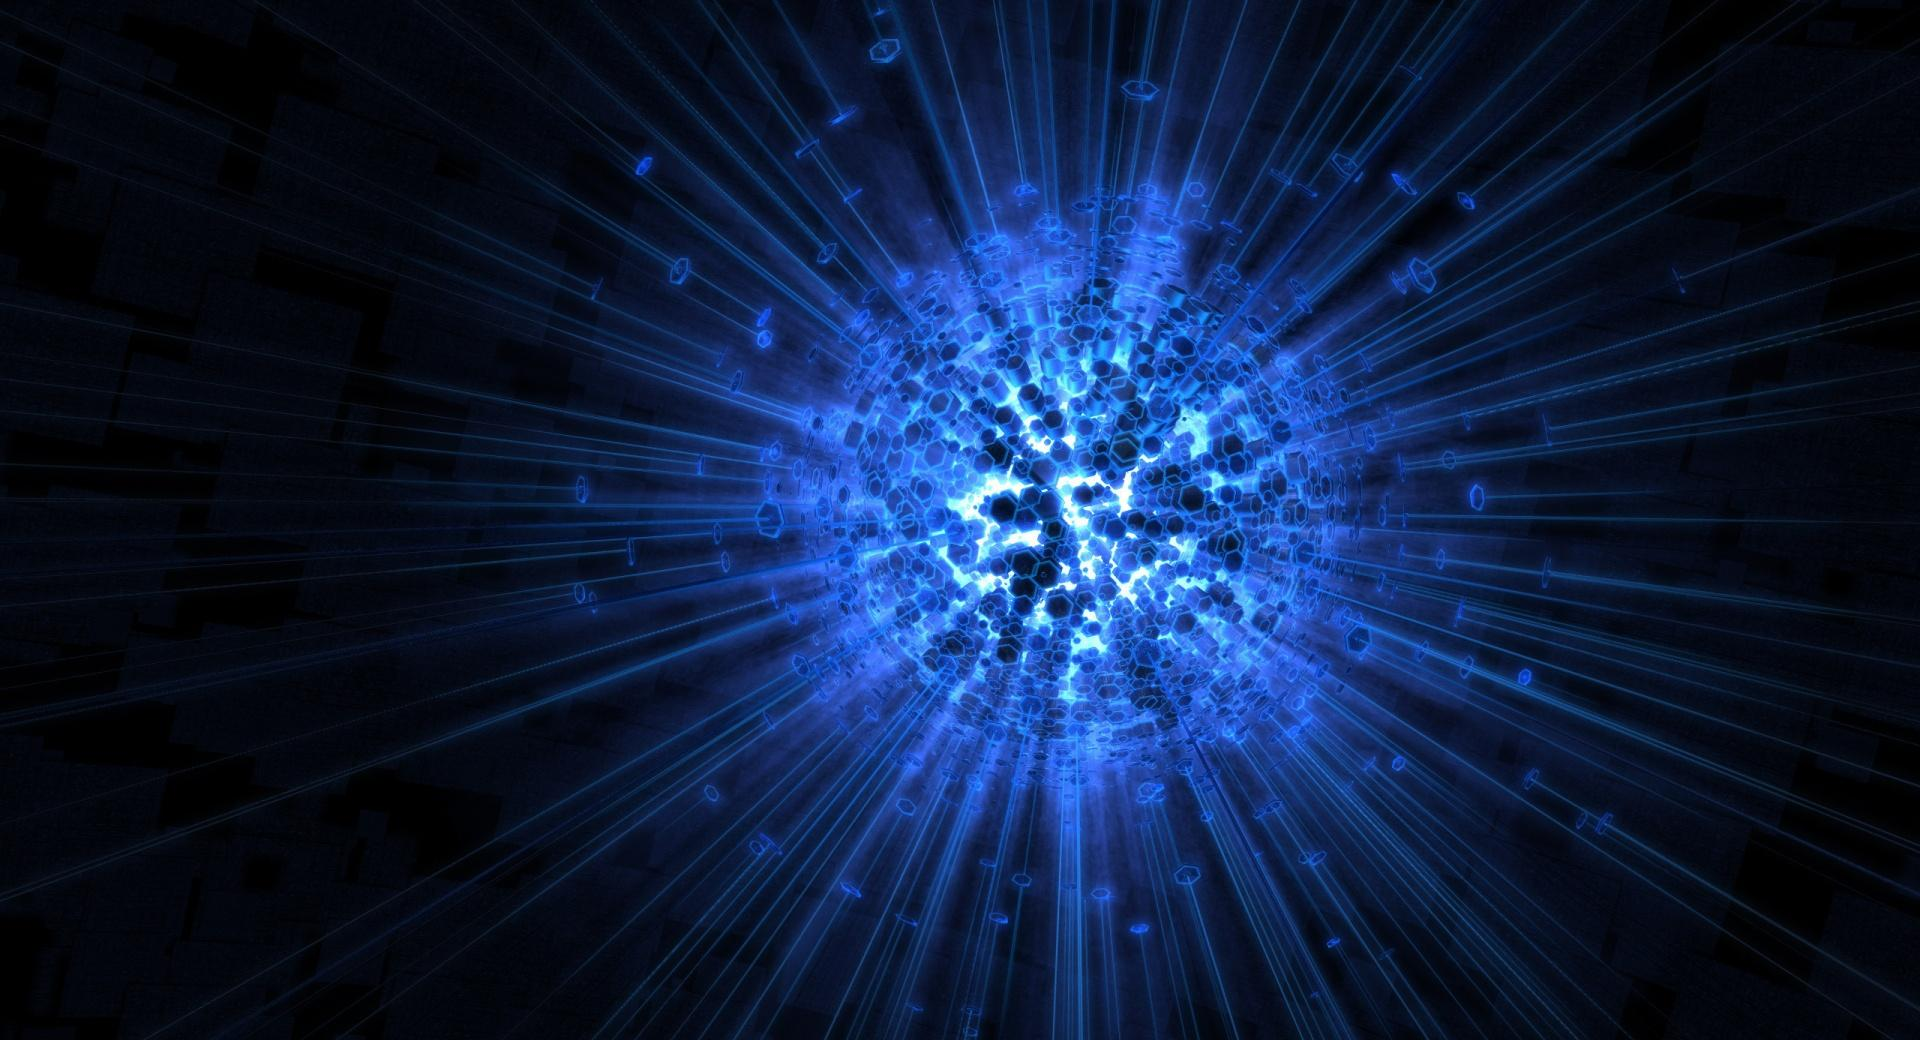 Digital Blue Sphere wallpapers HD quality